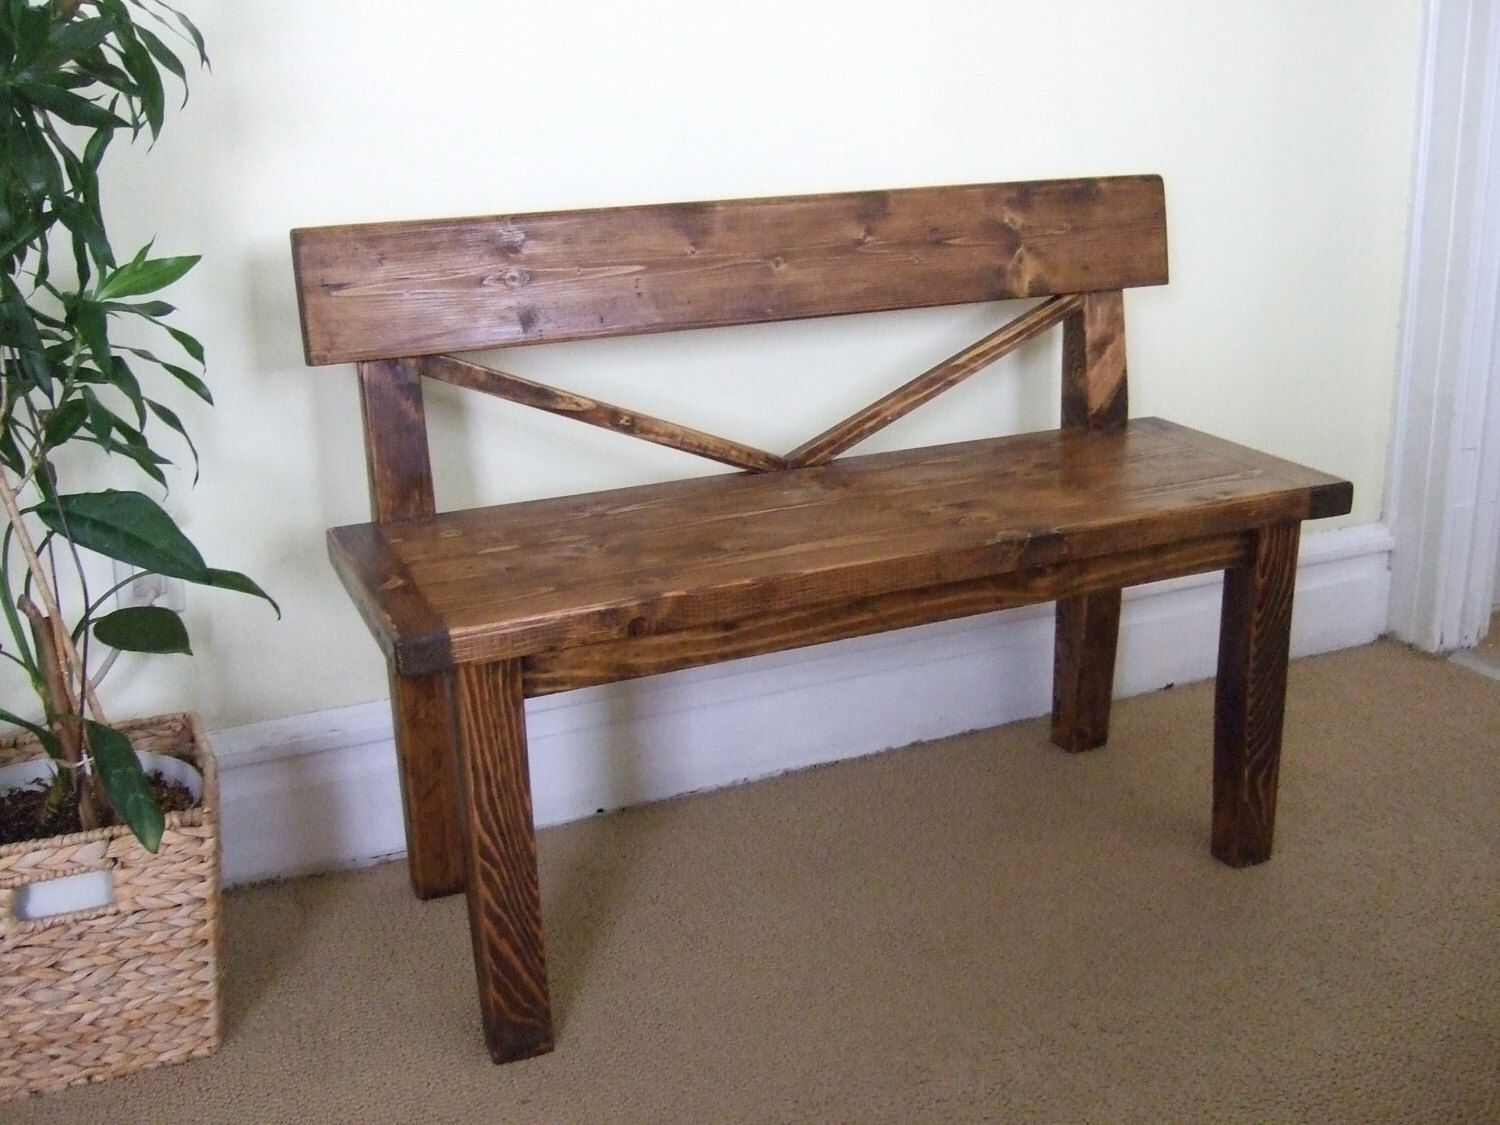 Farmhouse style bench Rustic bench with back Solid